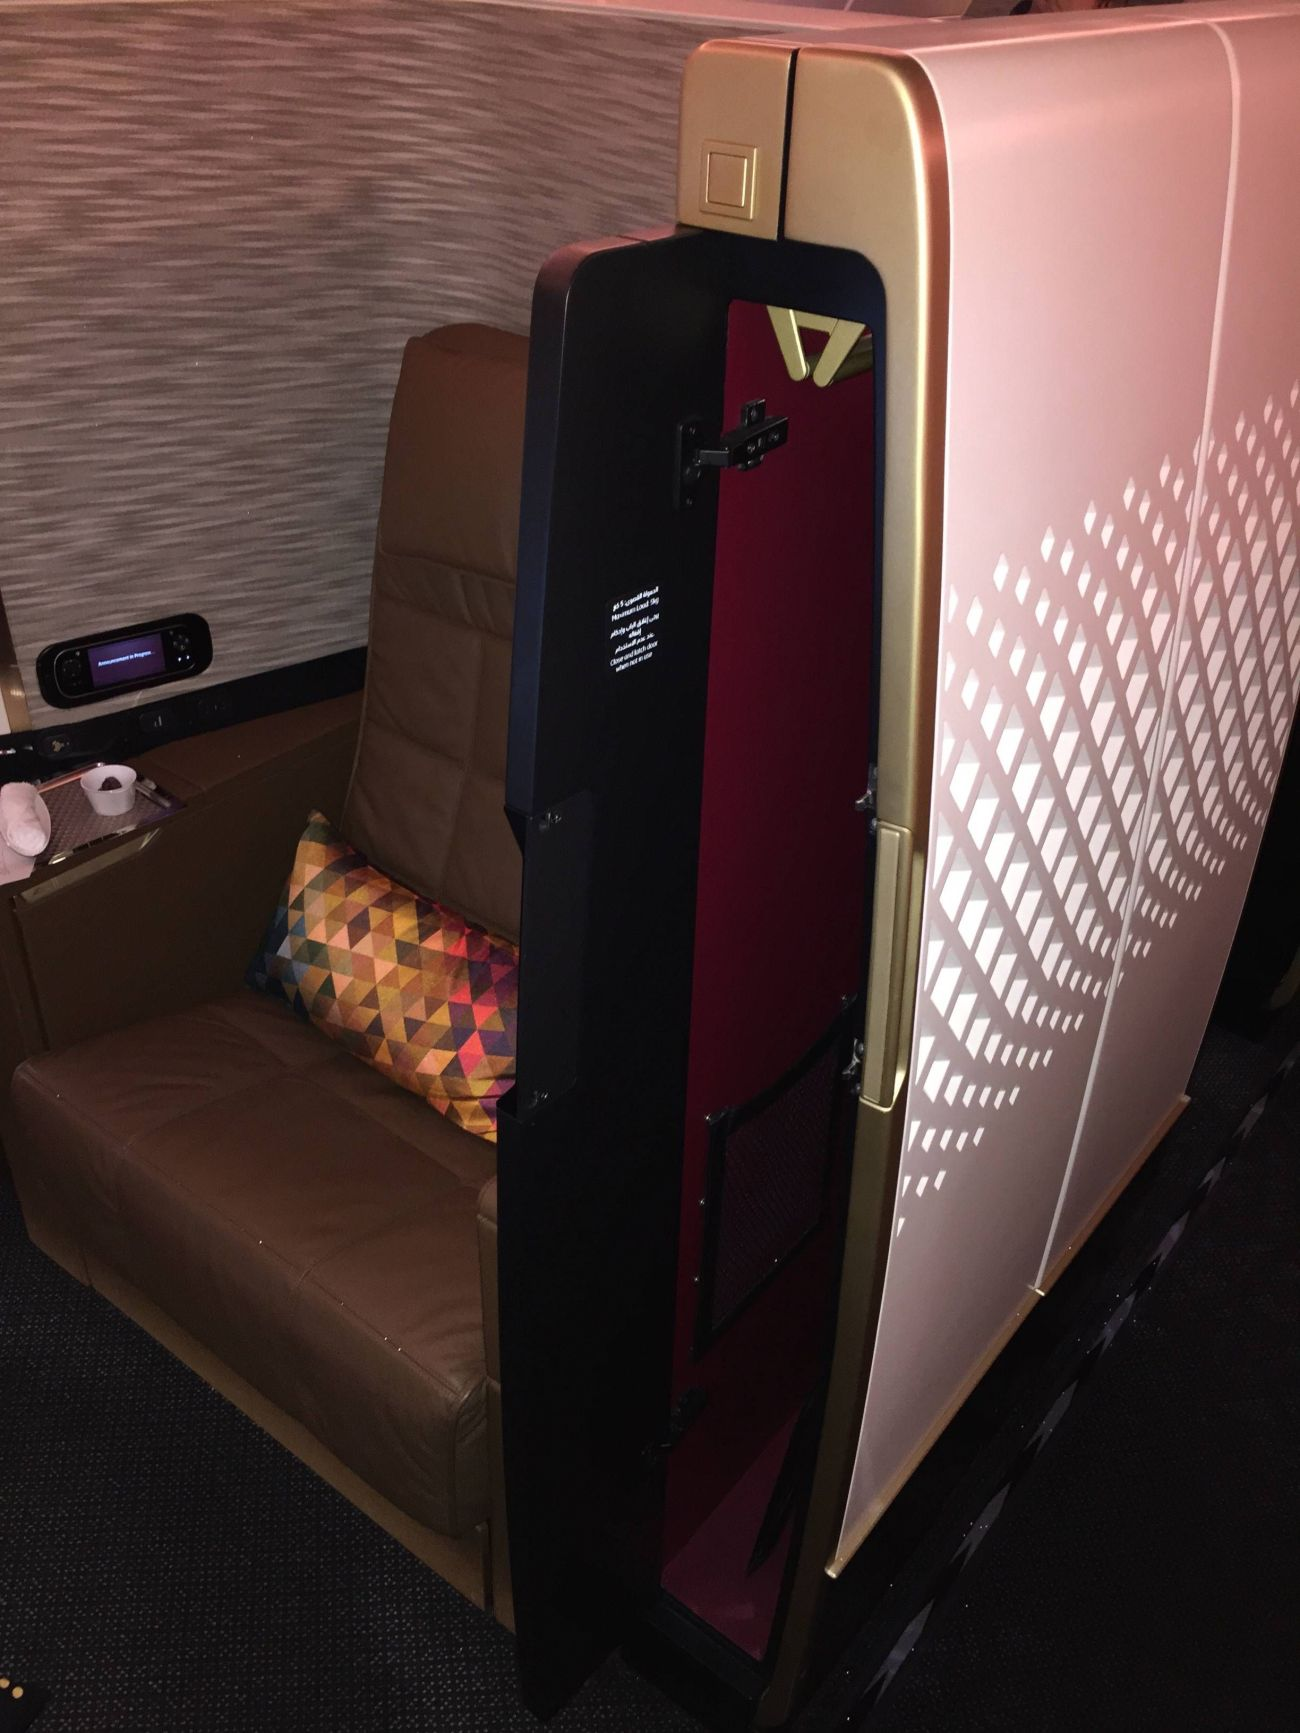 First Class Apartment A380 Etihad - PassageirodePrimeira20